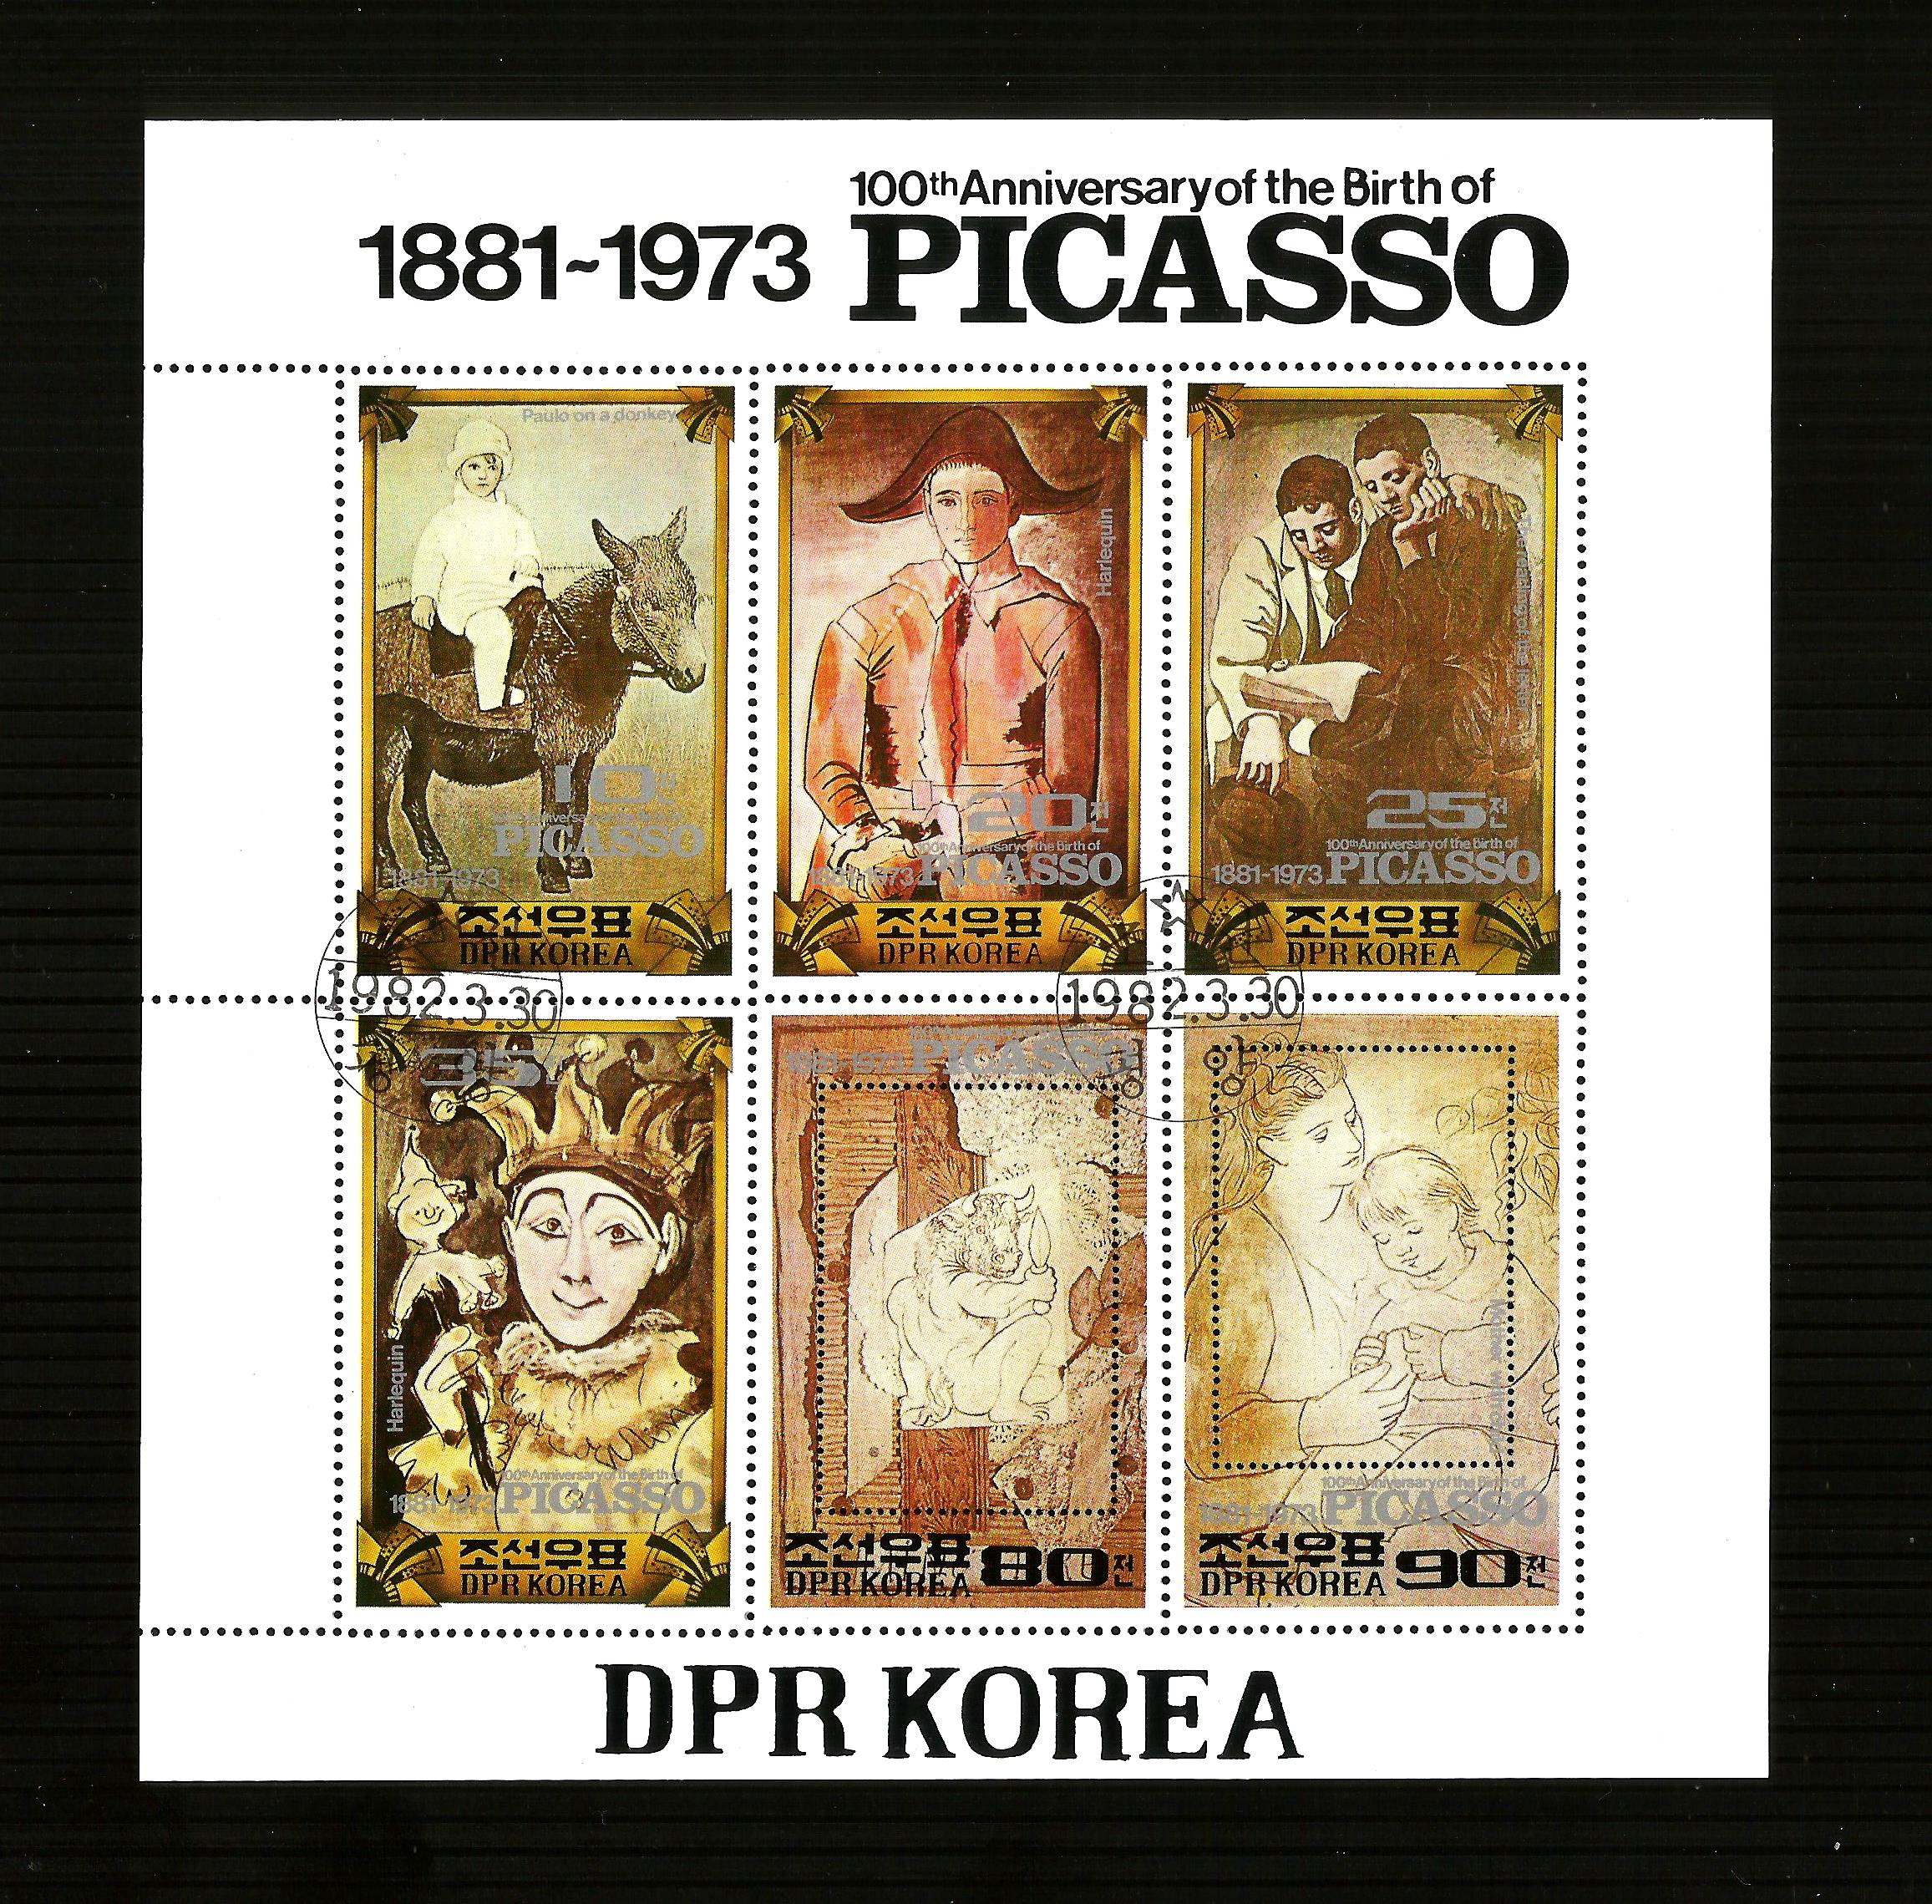 KOREA, 1982. Picasso Sheet  Perf-Imperf, cto